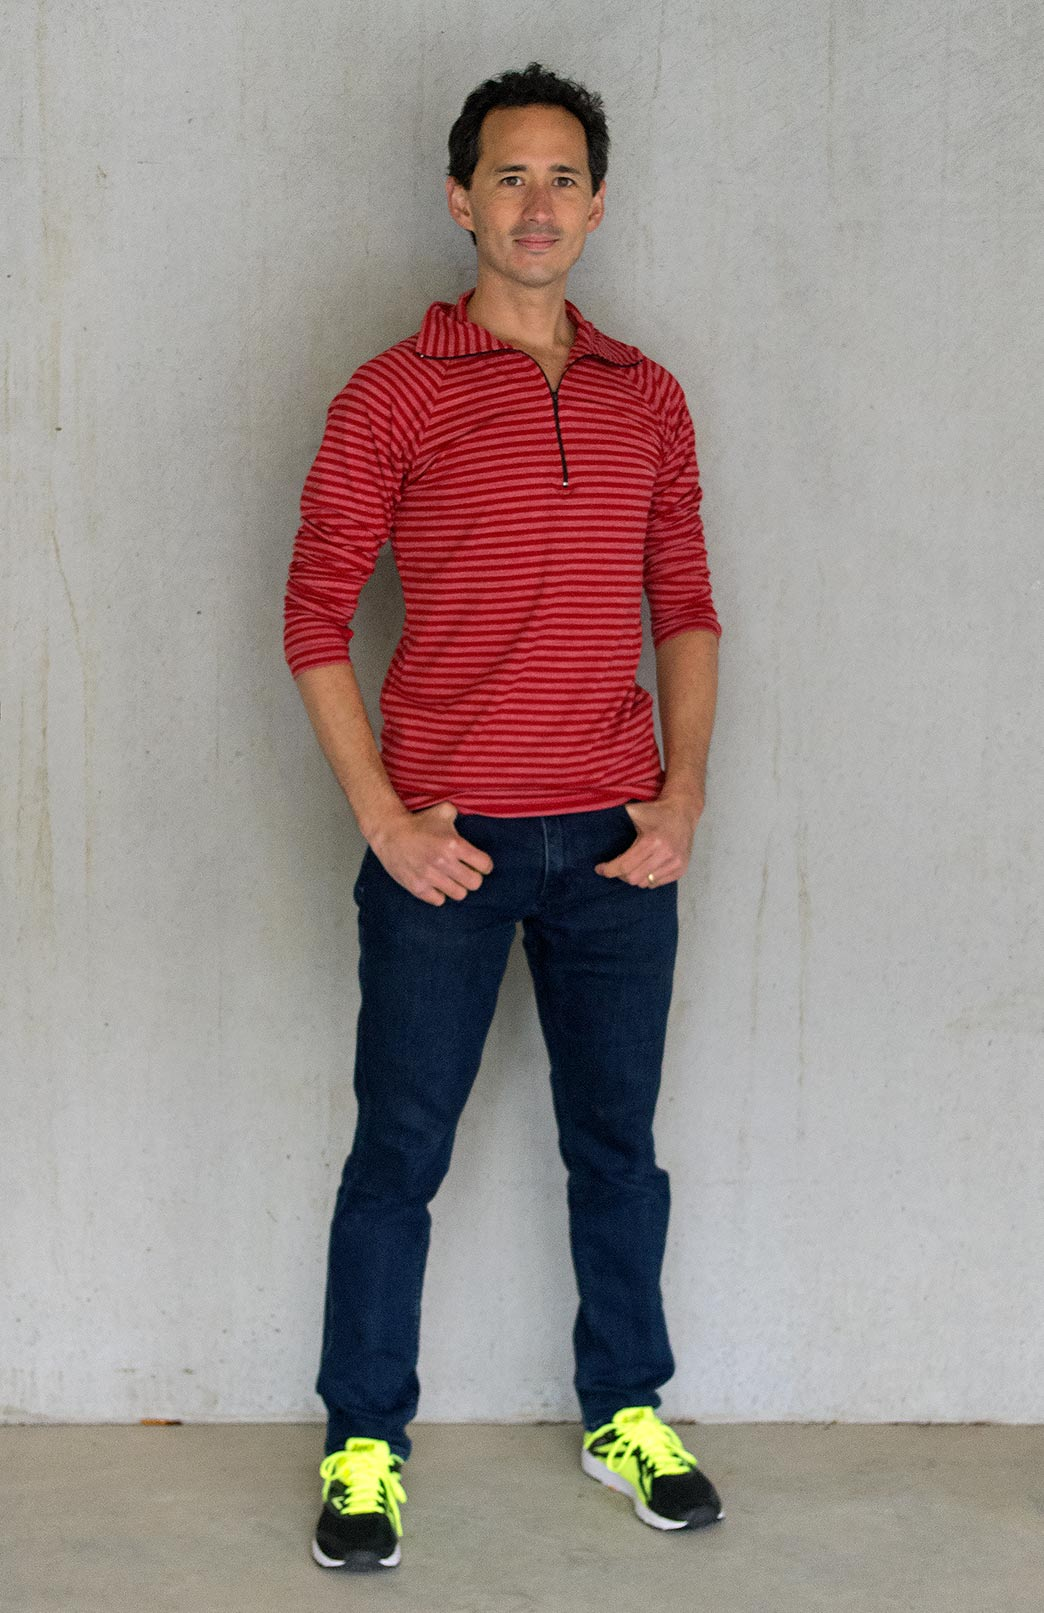 Zip Neck Top - Mid-Weight (~220g) - Men's Flame Stripe Mid-Weight Merino Wool Long Sleeved Zip Neck Top with Thumb Holes for Layering with Thermals - Smitten Merino Tasmania Australia